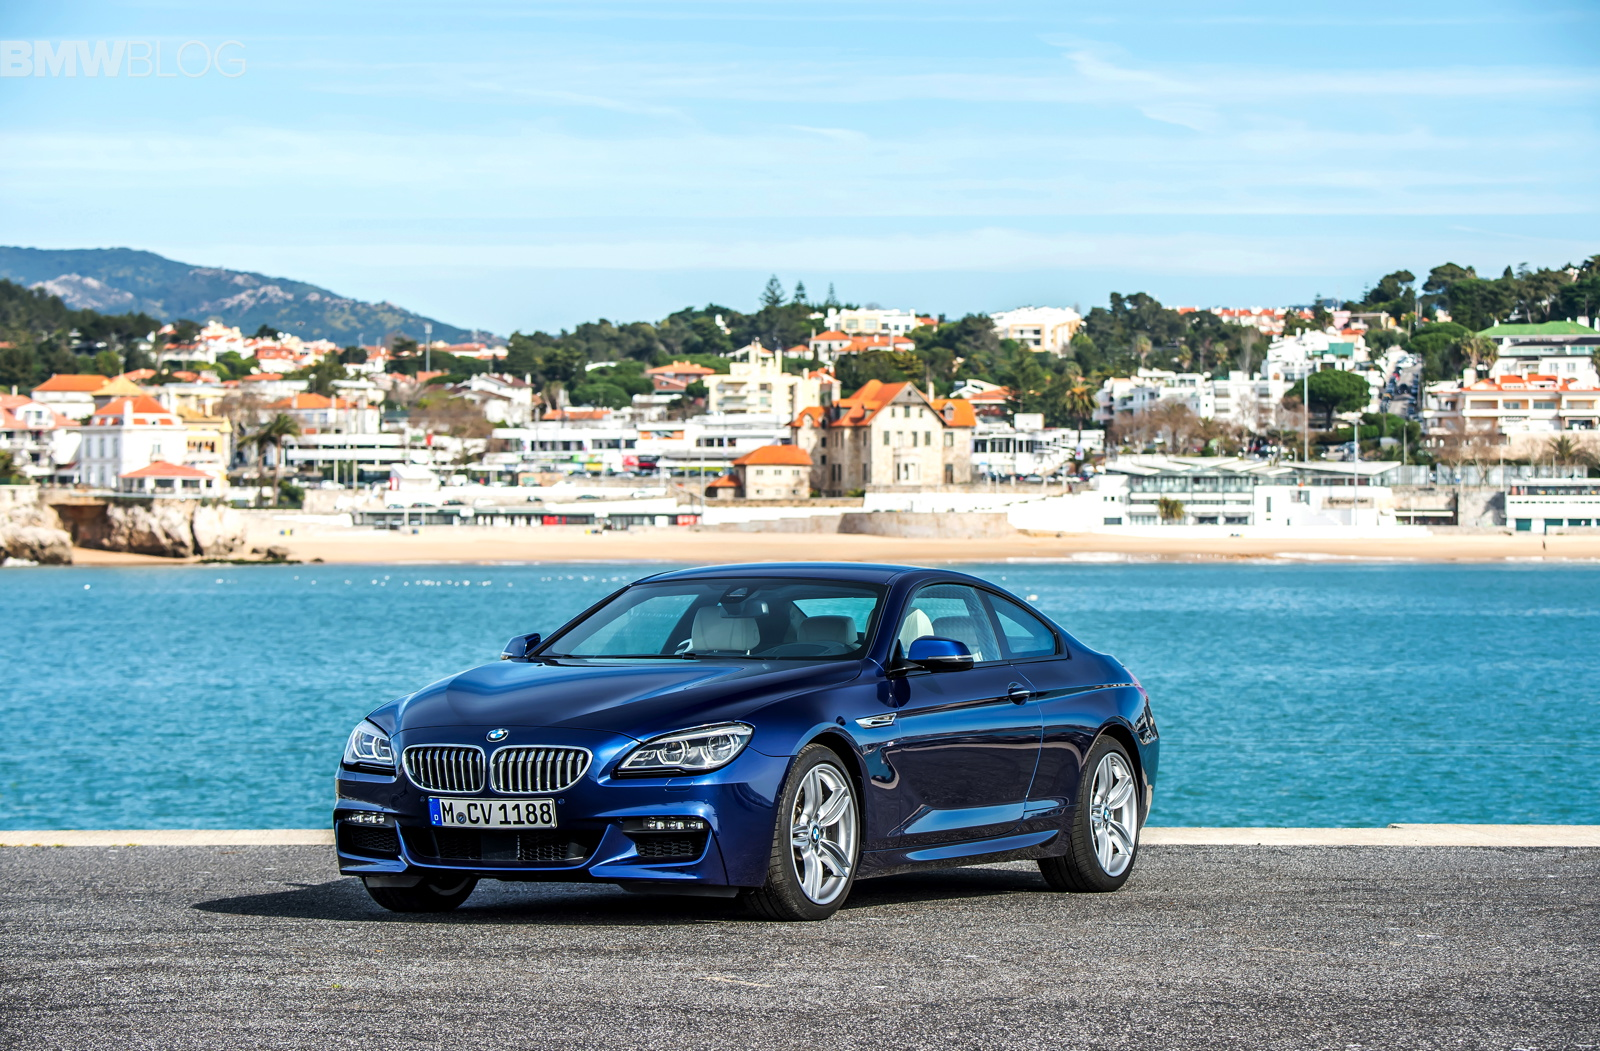 2015 bmw 6 series coupe images 46